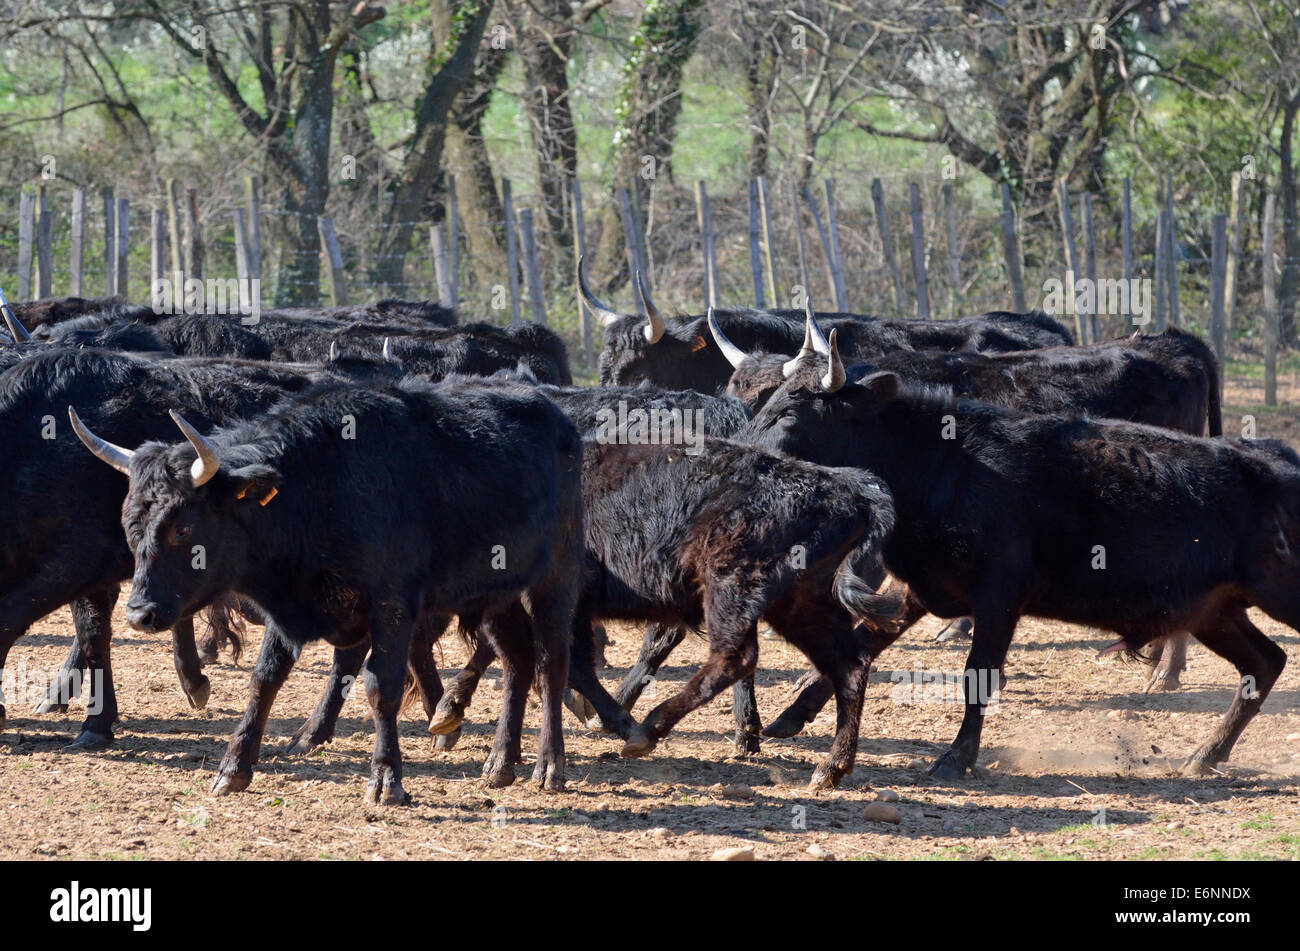 Camargue bulls being corralled in a paddock, Camargue, France, Europe - Stock Image